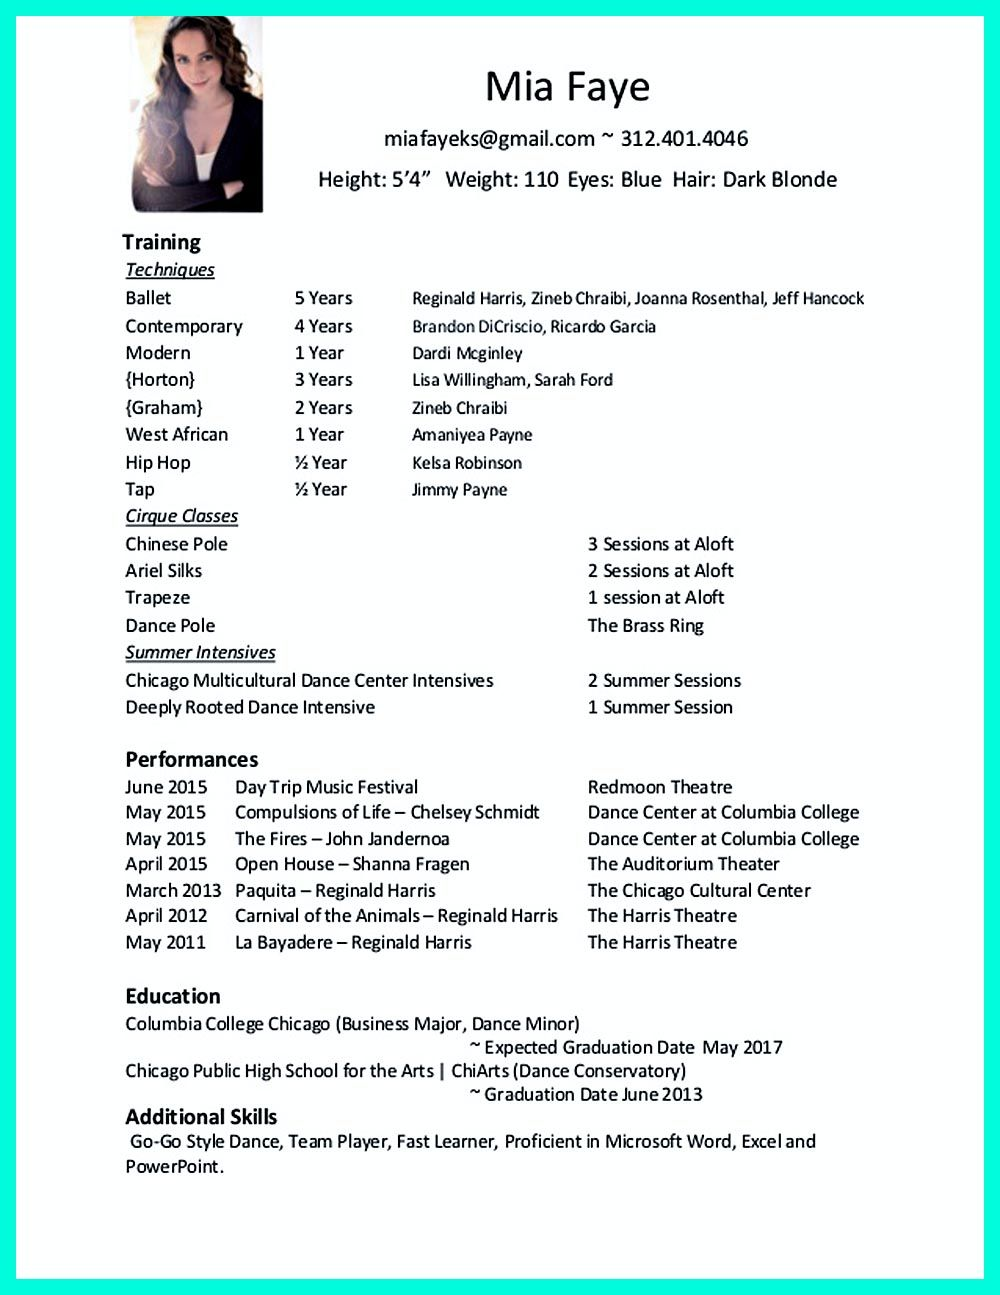 Dance Resume Can Be Used For Both Novice And Professional Dancer